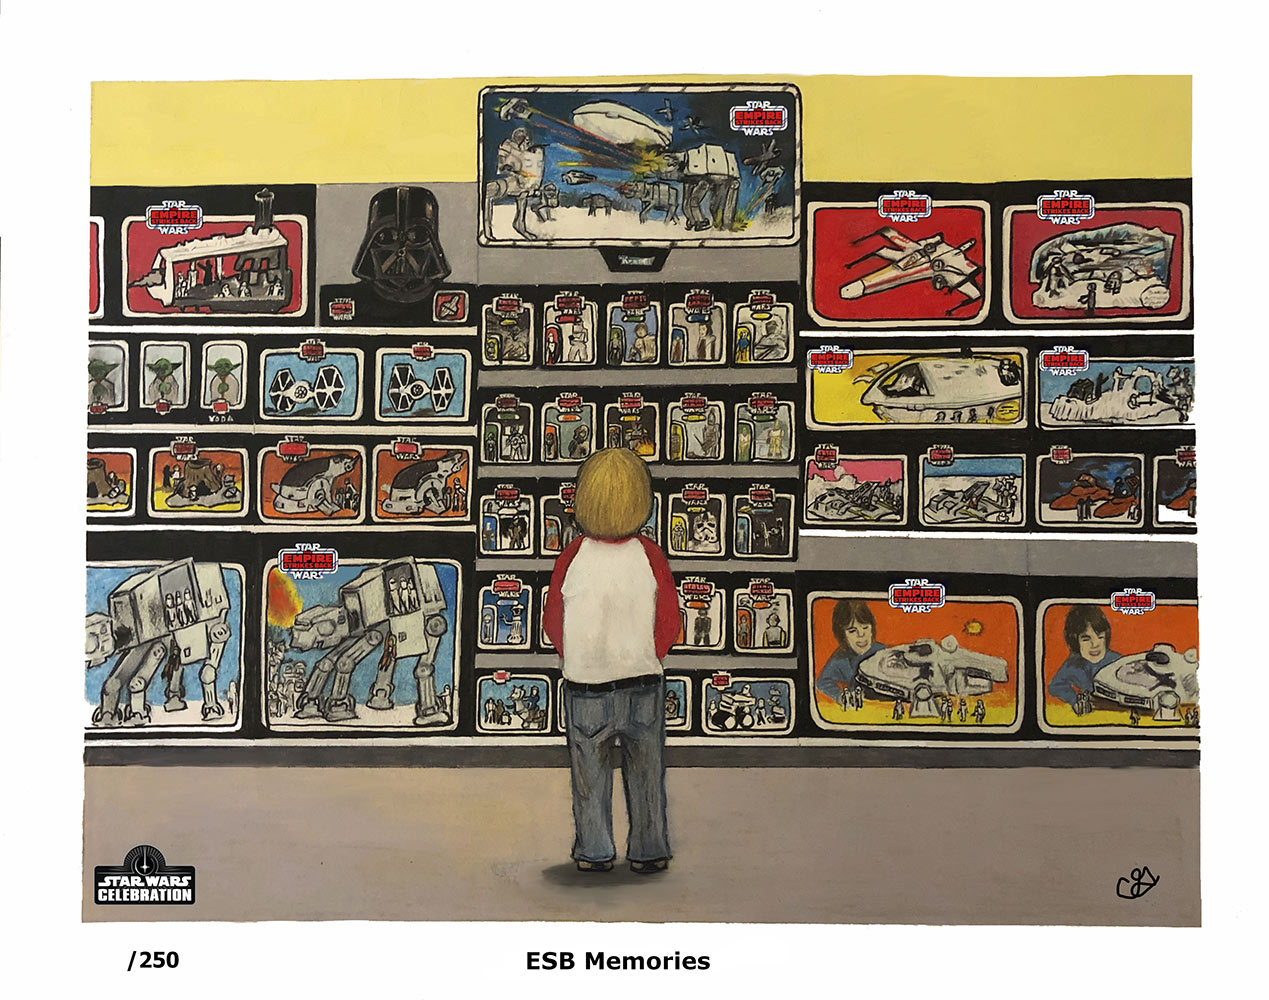 Star Wars Celebration 2020 Art Show: ESB Memories